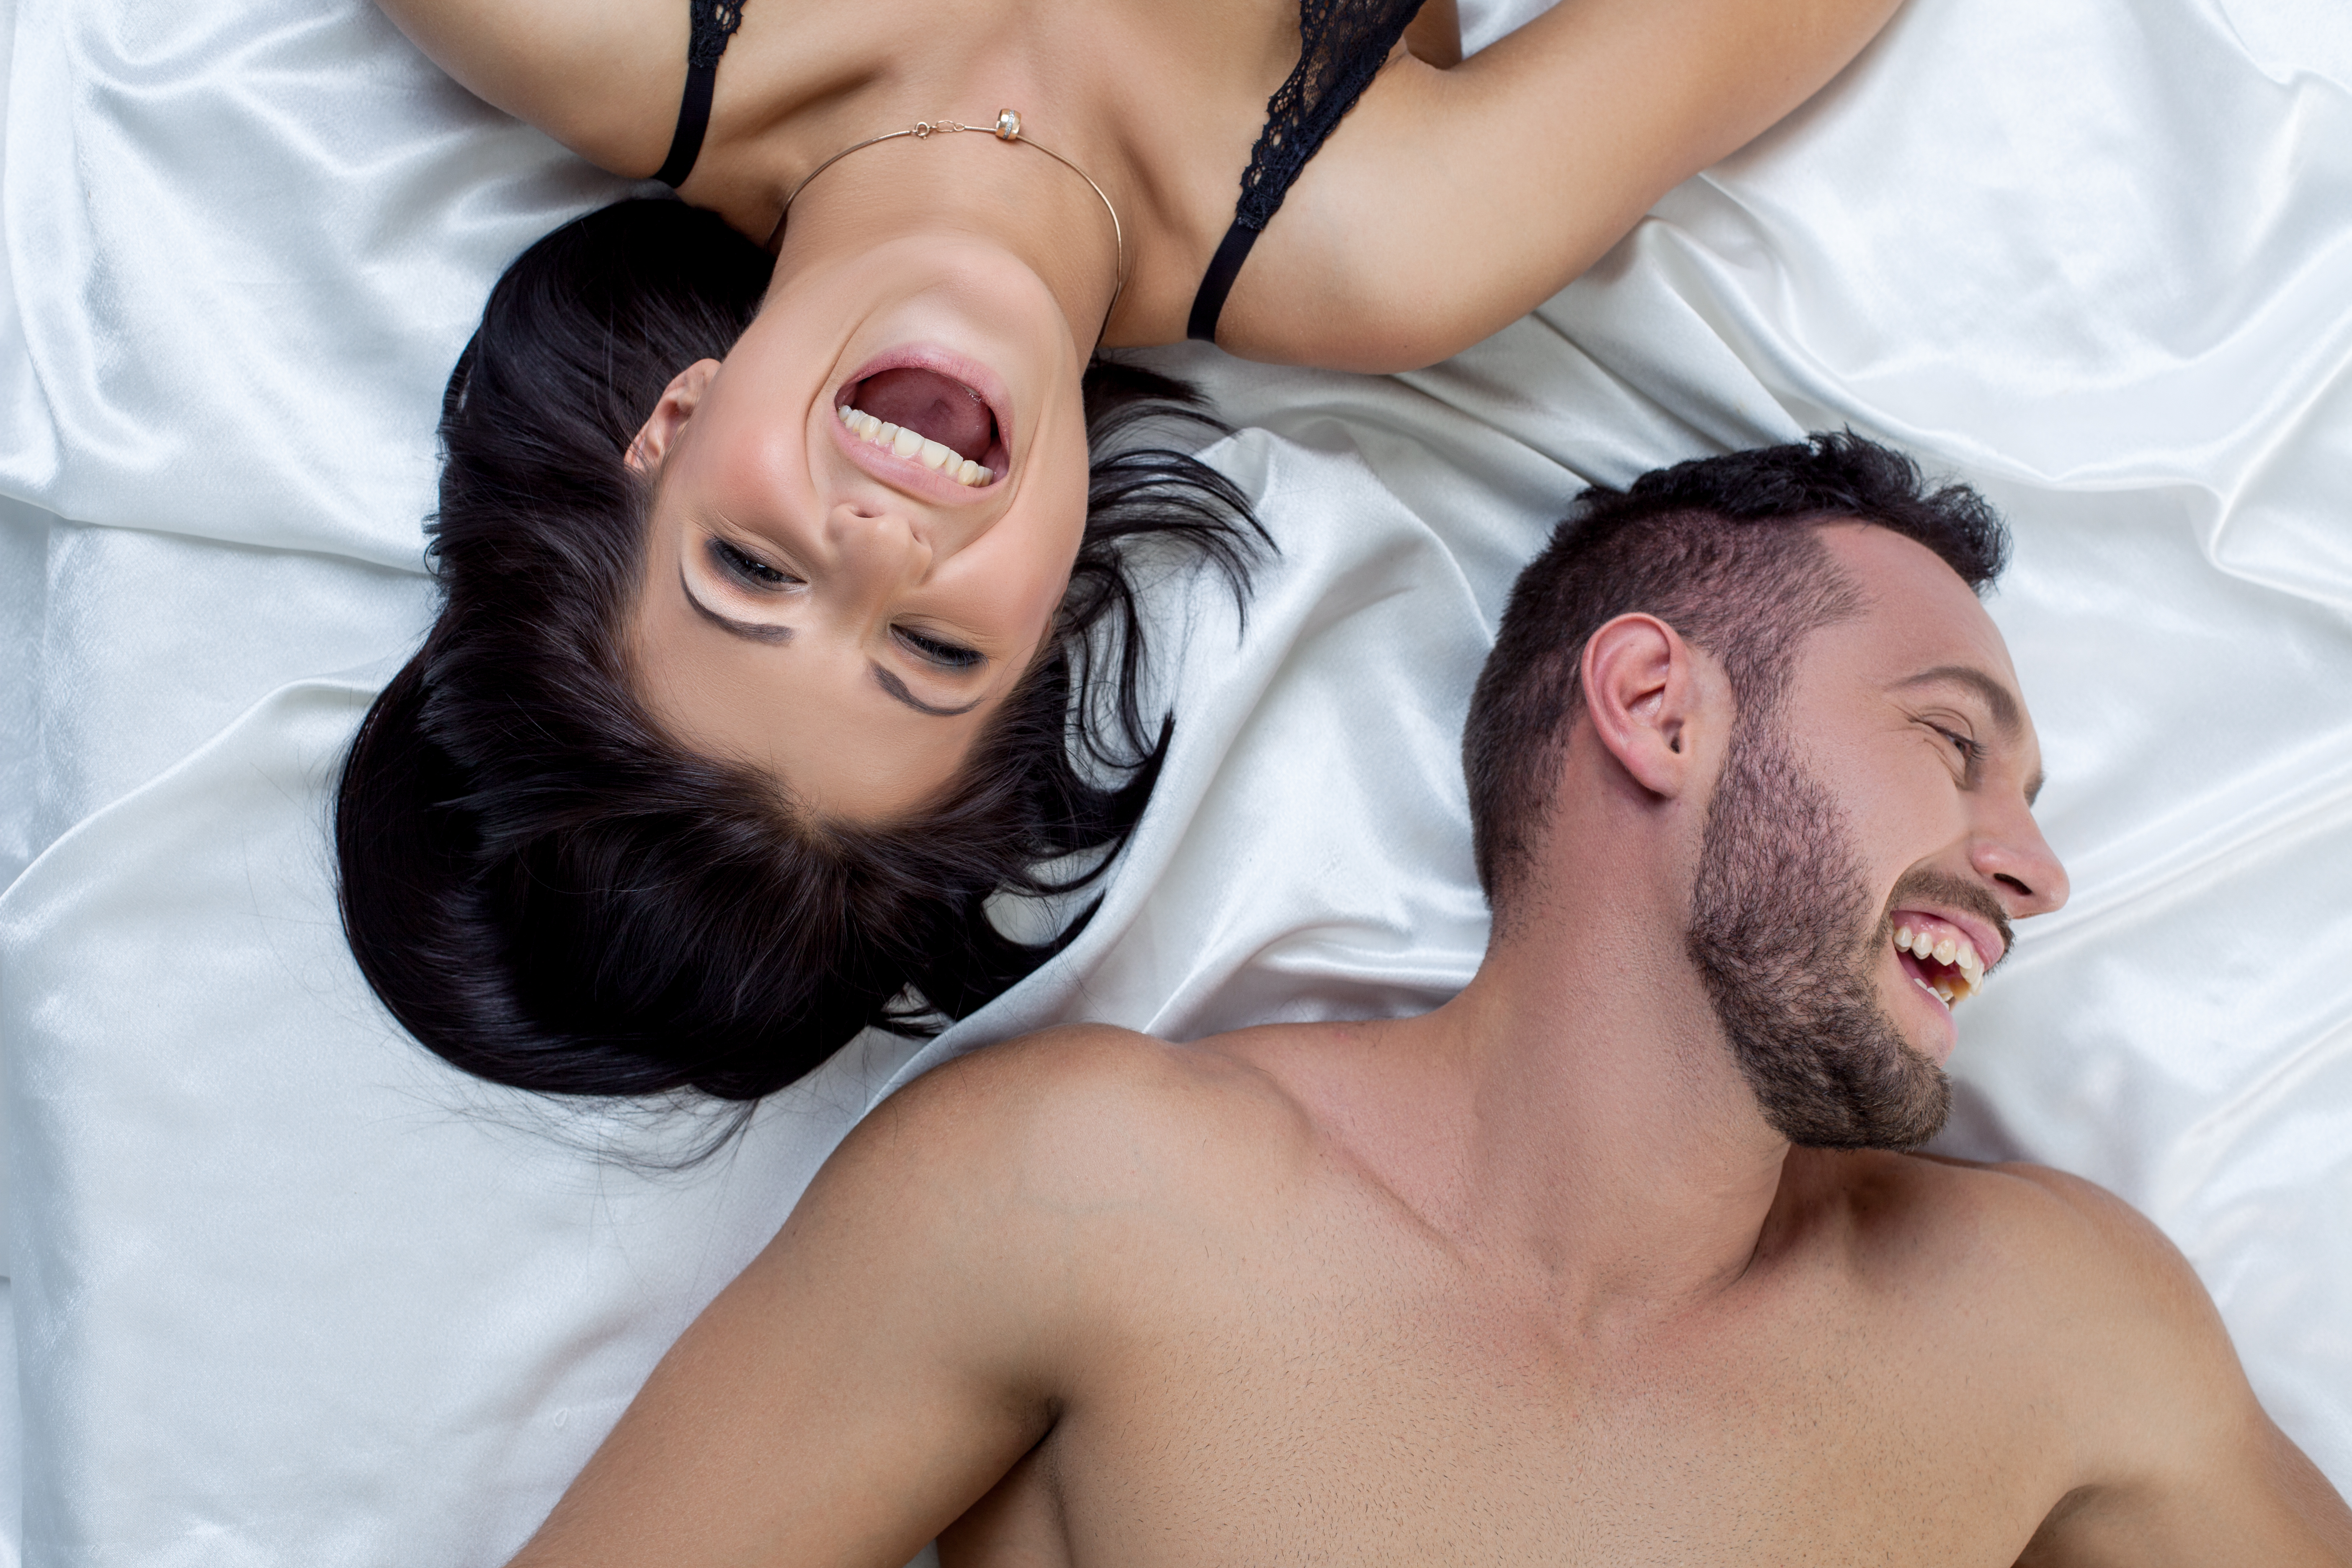 Women Reveal Their Not So Subtle Clues They Give Their Men To Tell Them They Want To Have Sex